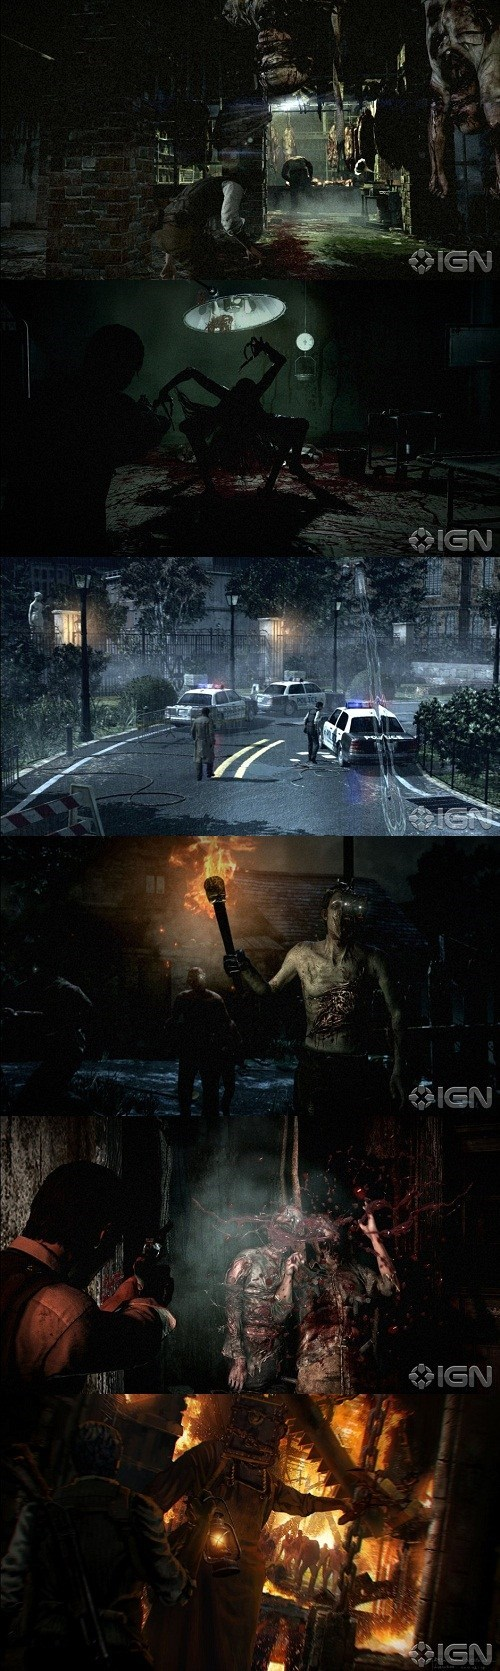 news the evil within bethesda IGN screenshots video games shinji mikami